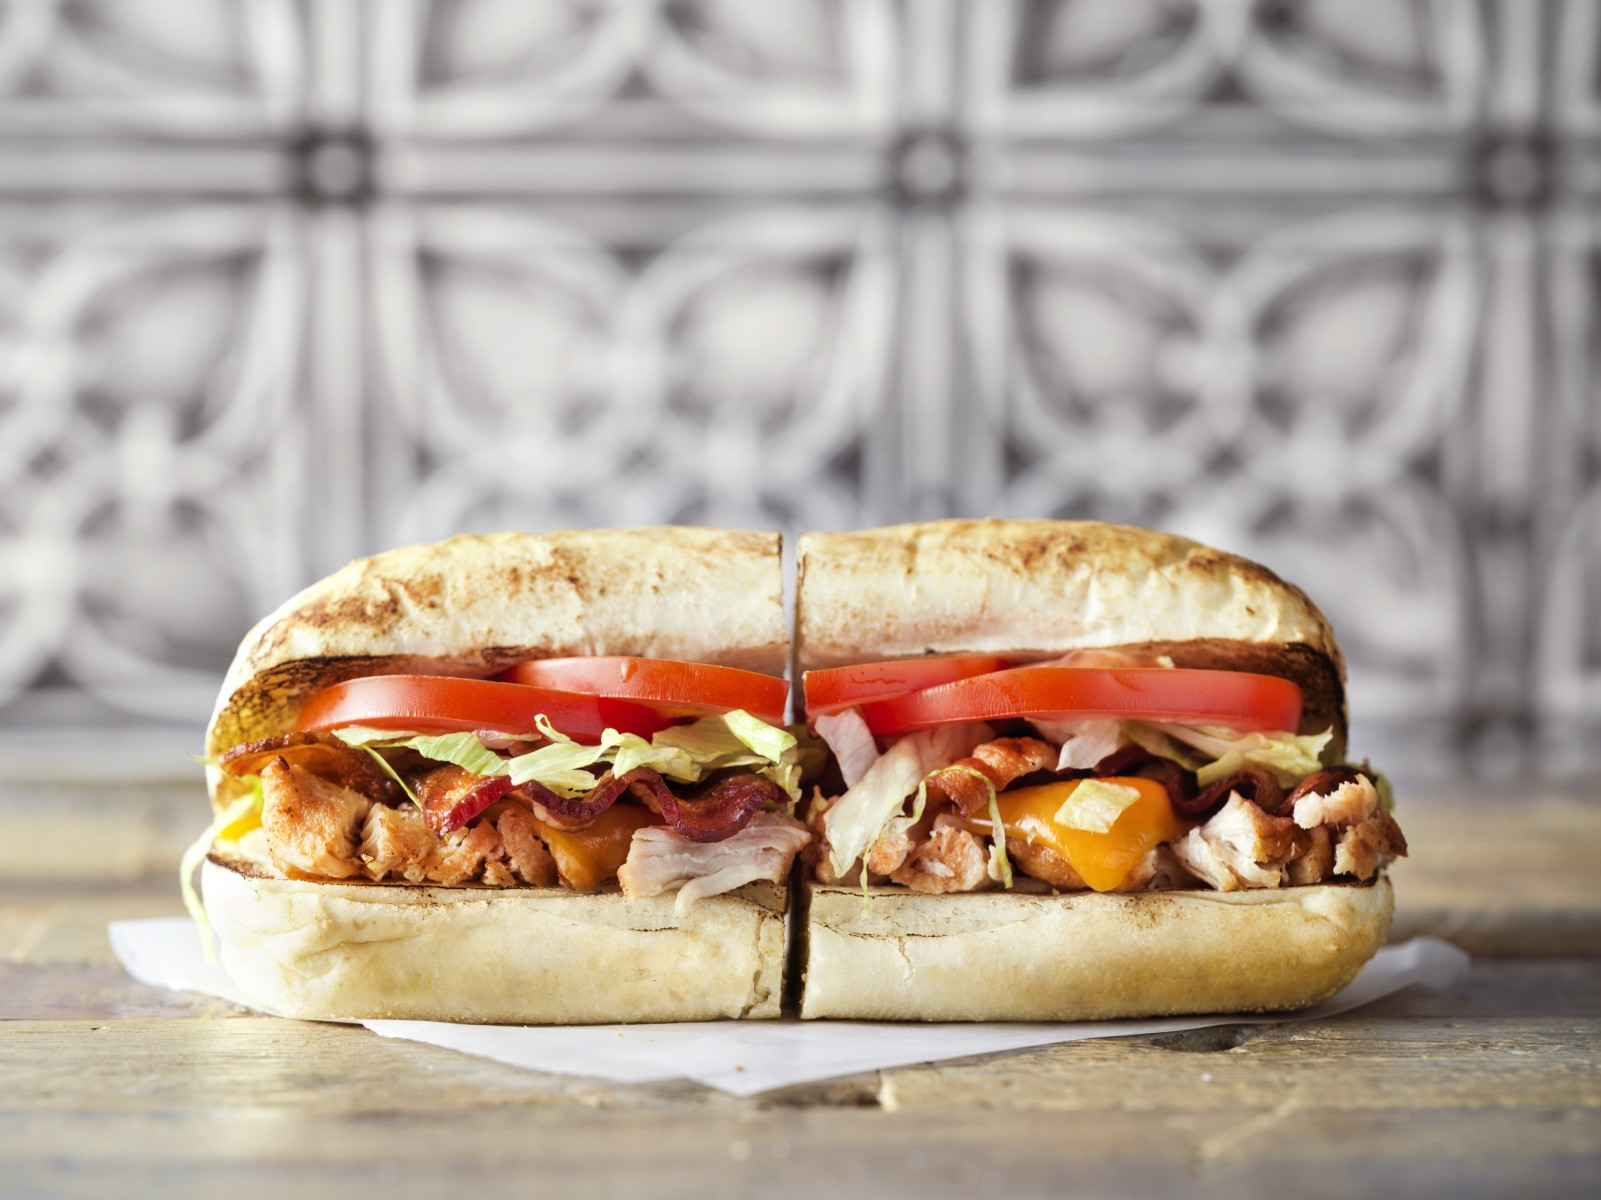 34. Potbelly - Turkey Club 2